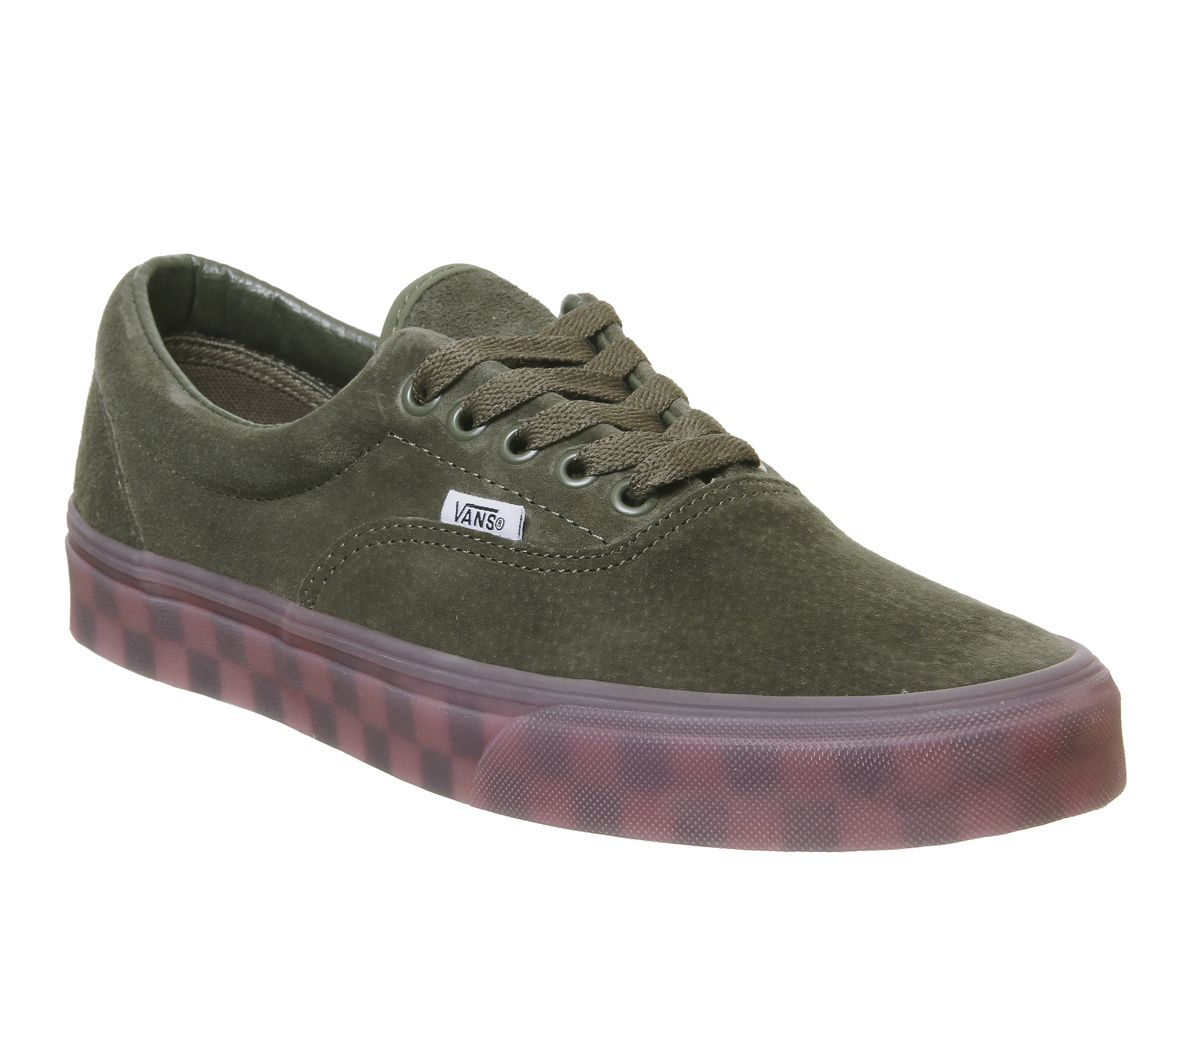 7dae69c6ab094d Vans Era Trainers Grape Leaf Checker Ice Sole - Unisex Sports